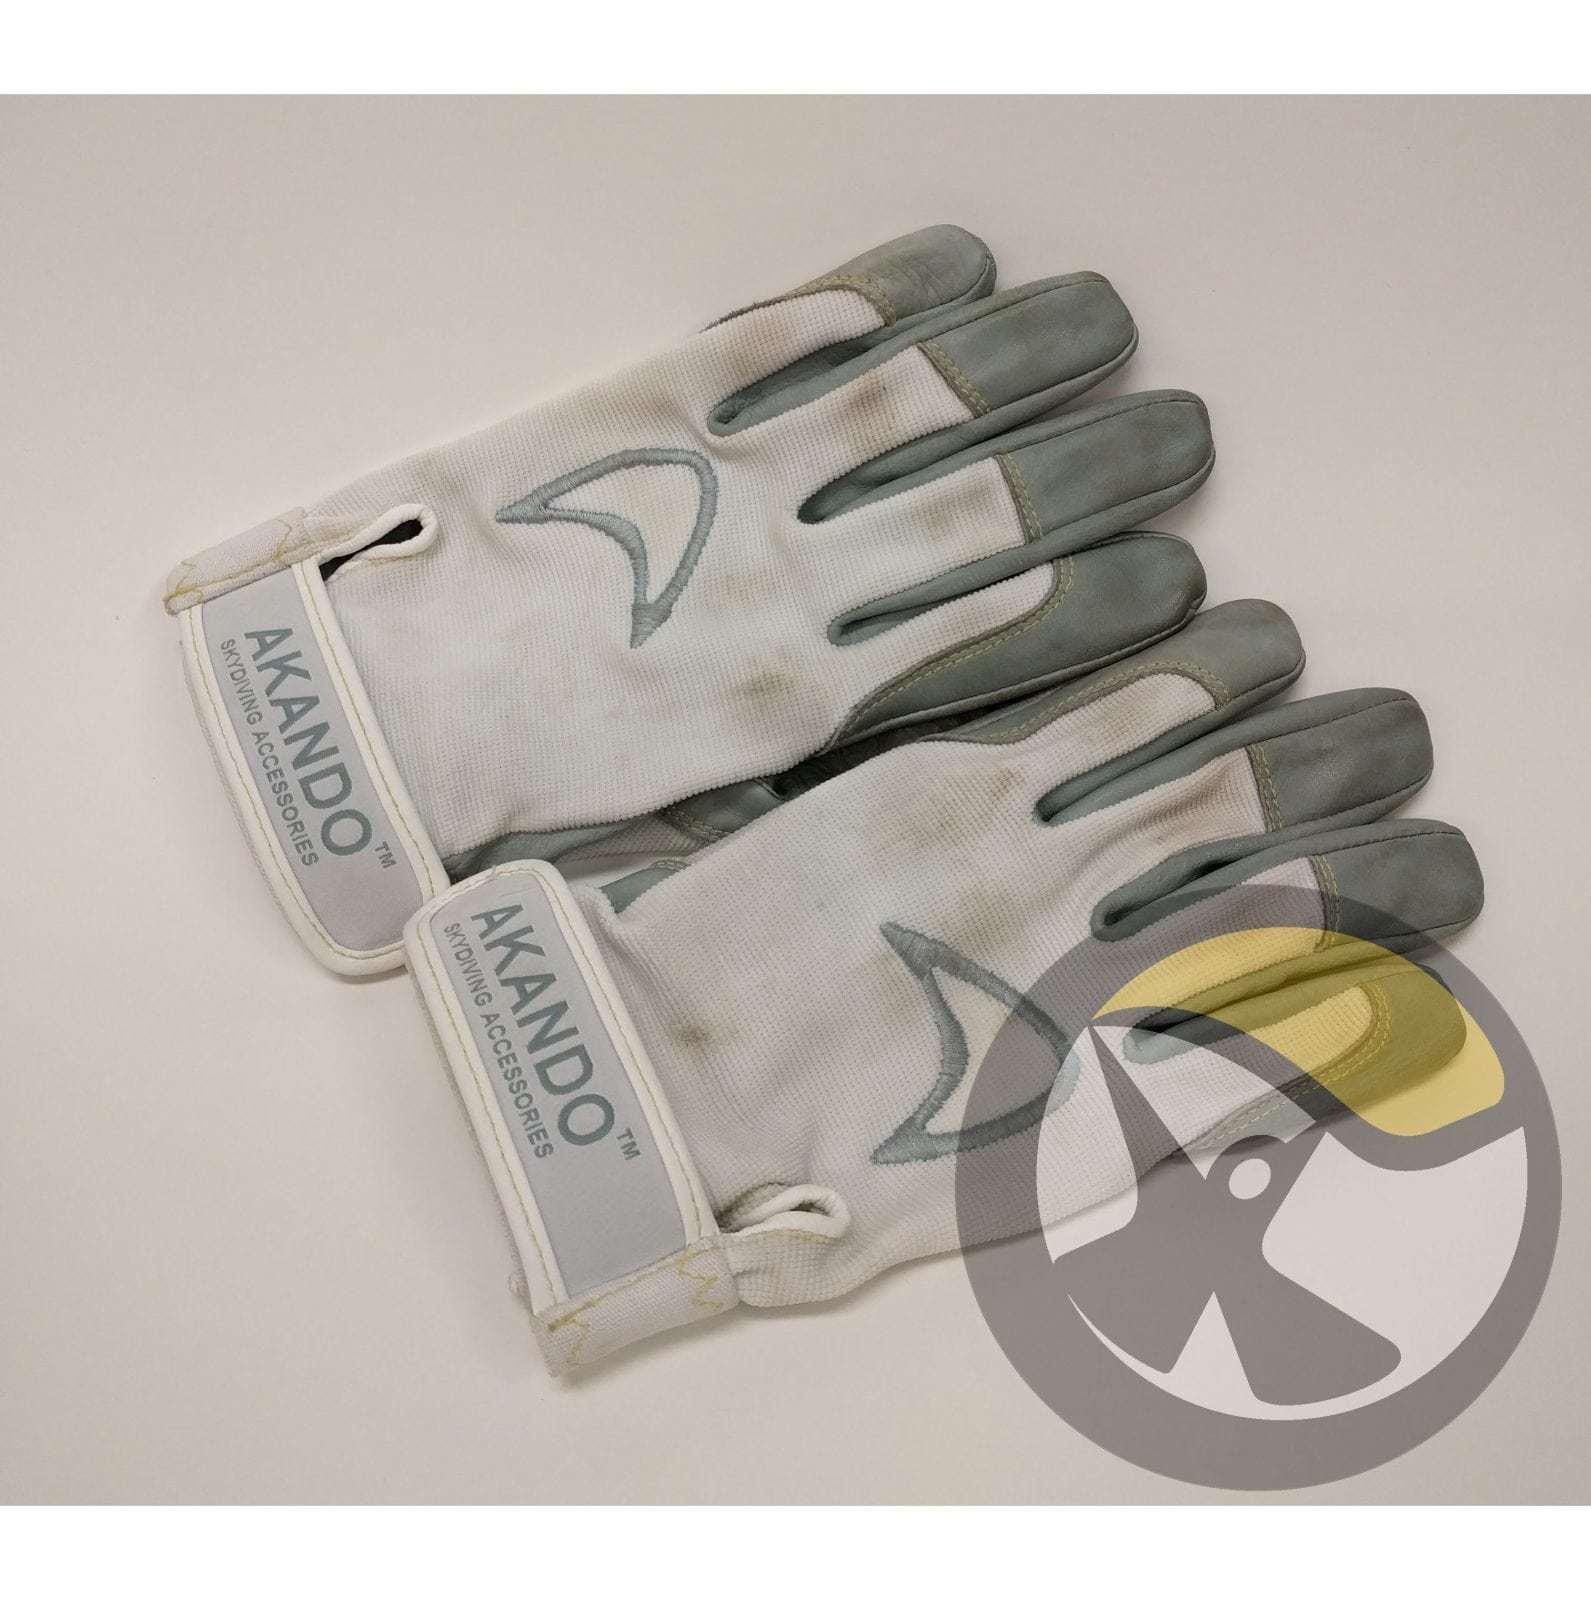 Used Akando Ultimate Skydiving Gloves - White